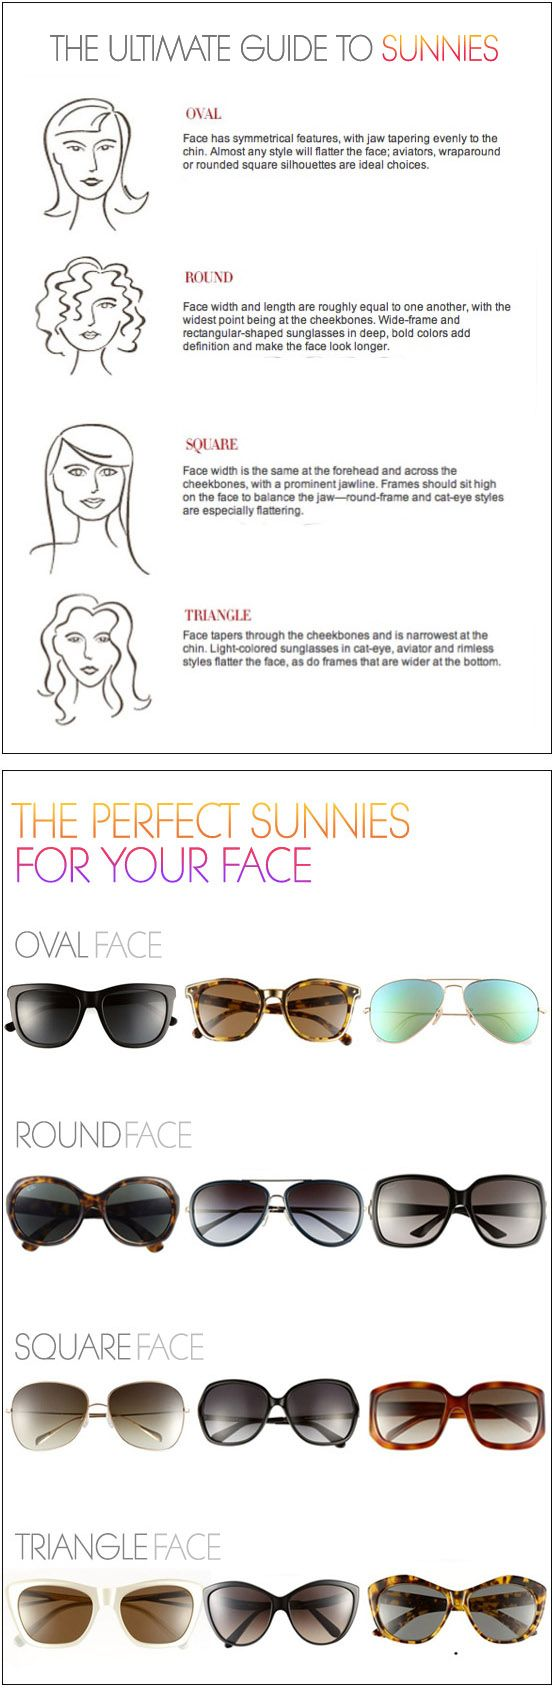 17 Best images about Face Shape and Glasses on Pinterest ...